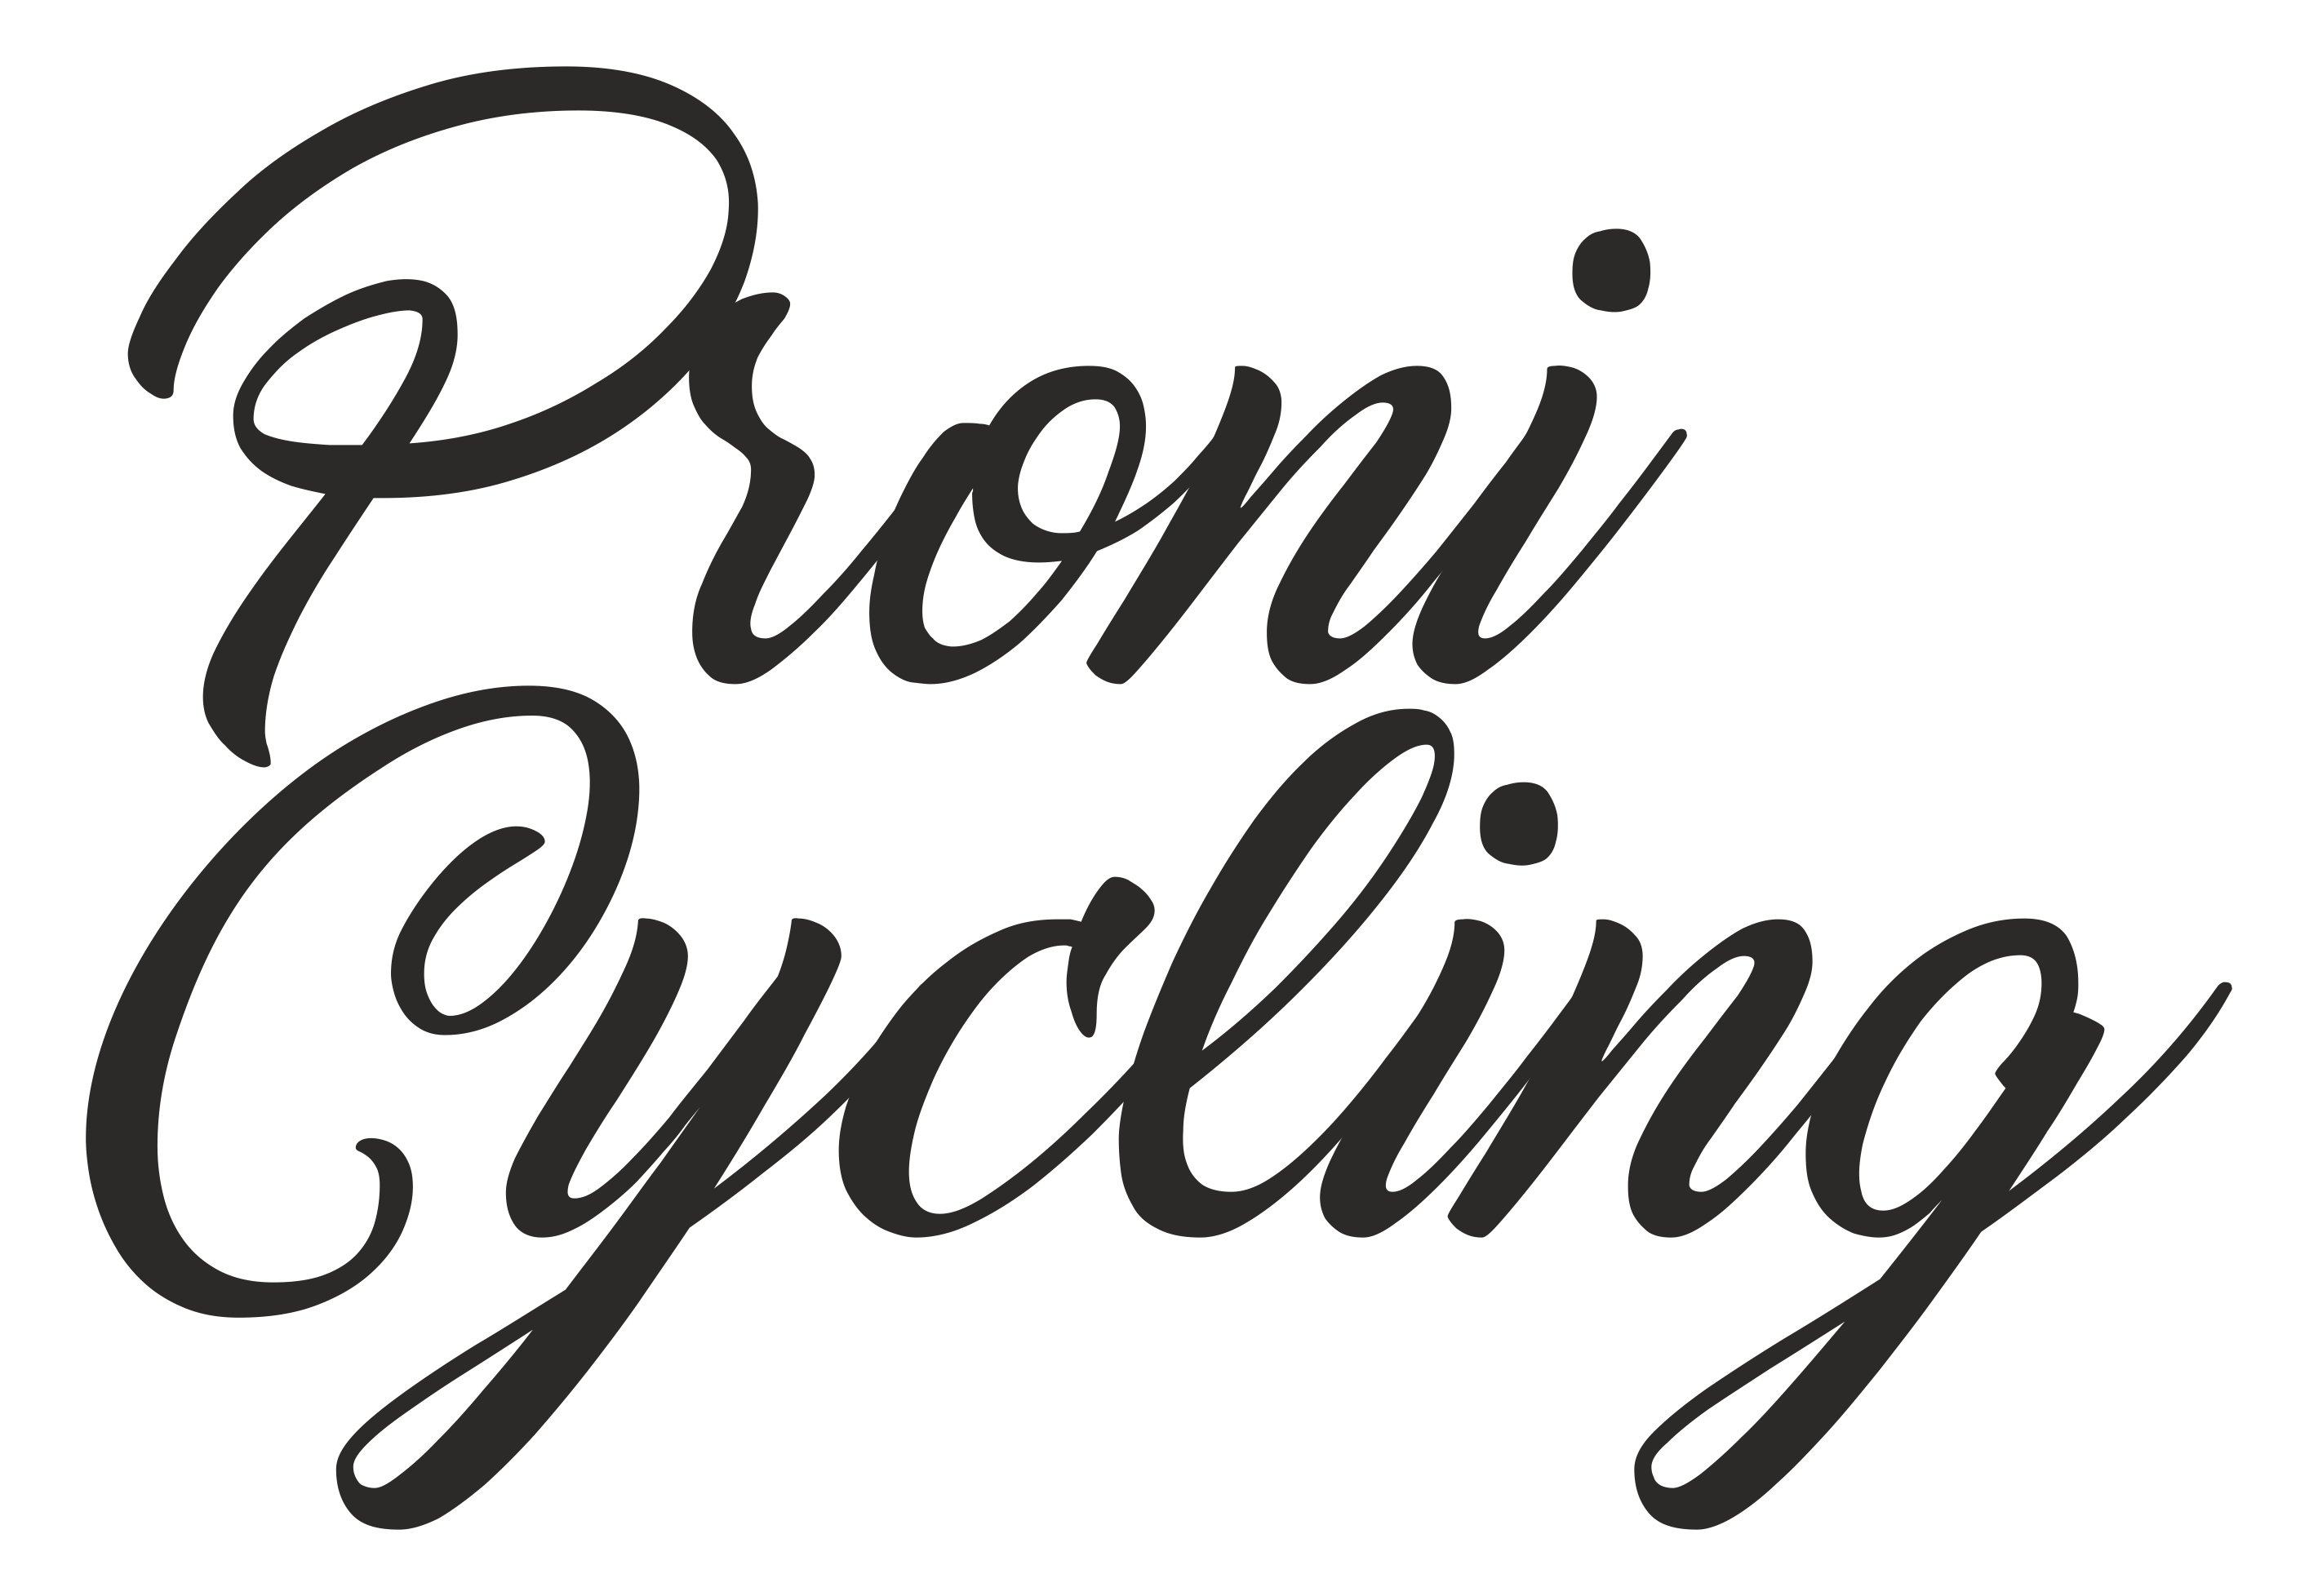 ProniCycling